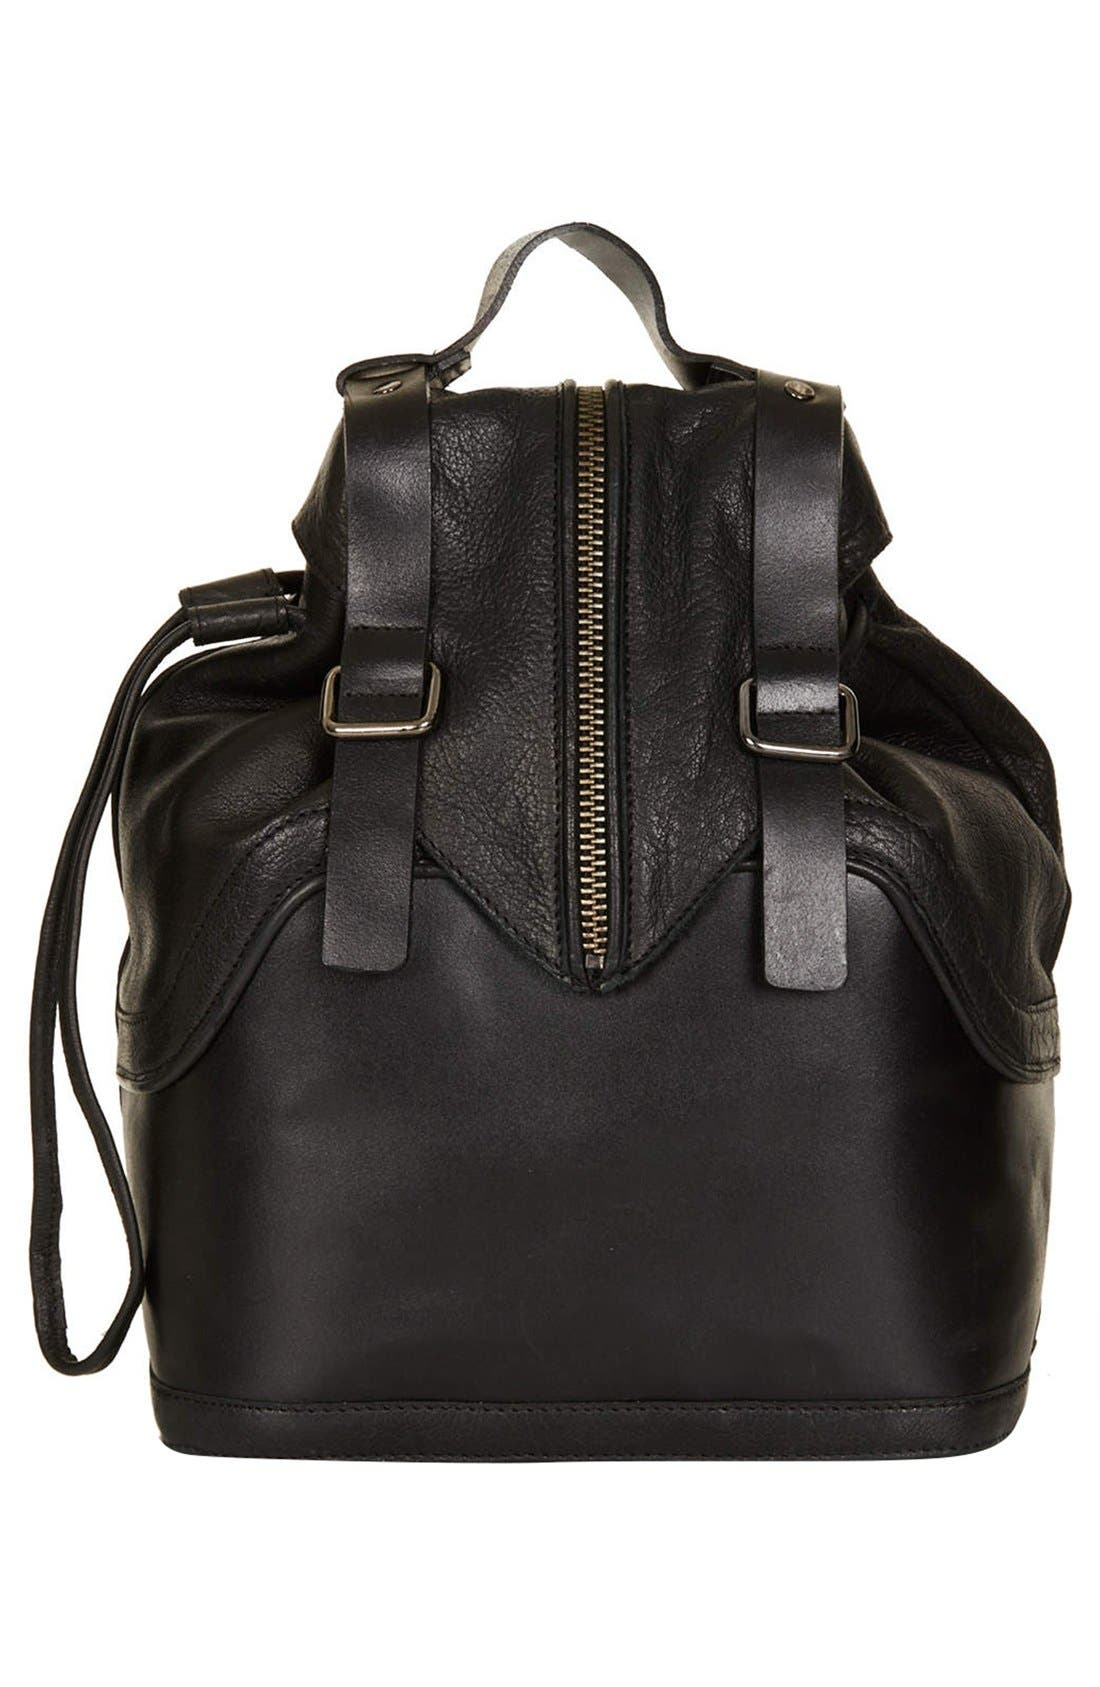 Alternate Image 1 Selected - Topshop Buckled Leather Backpack